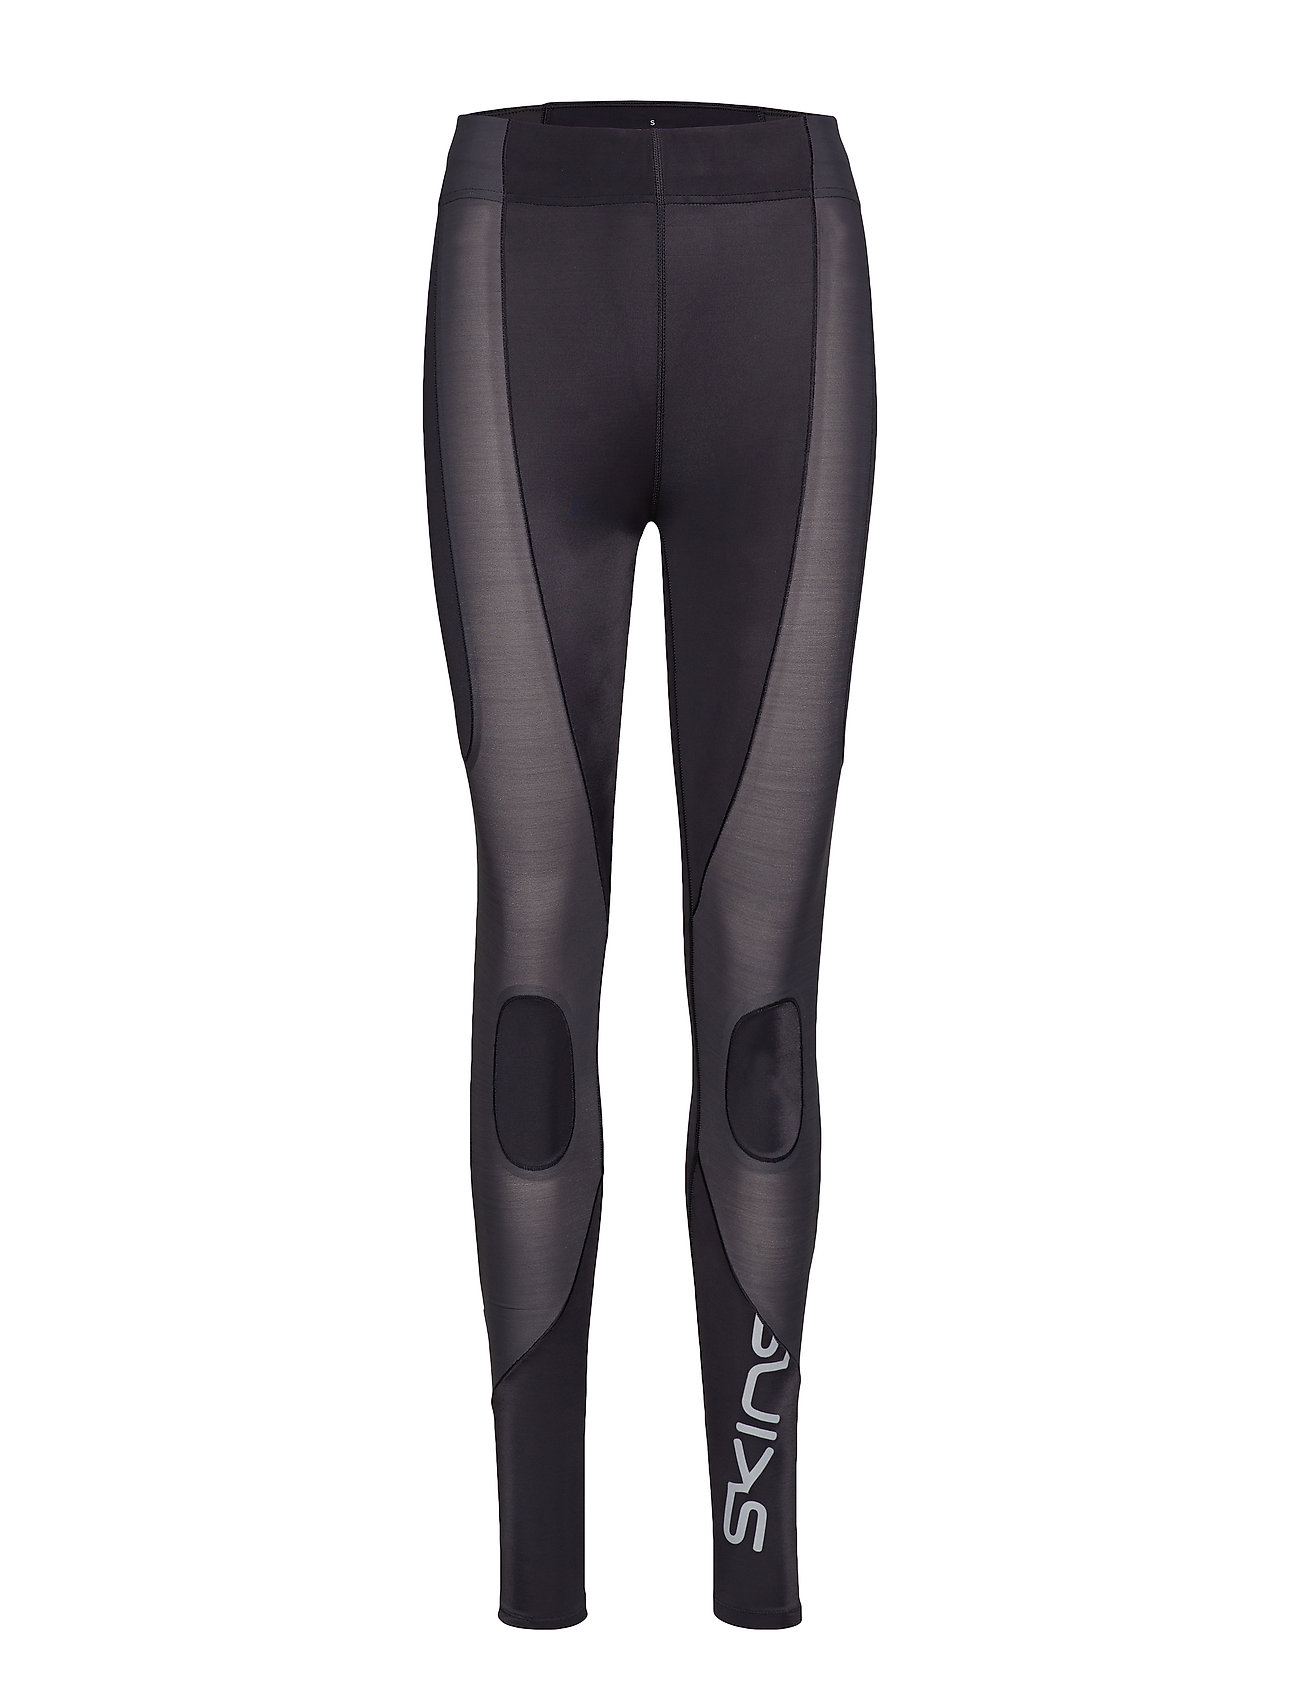 Skins DNAmic Ultimate K-Proprium Womens Long Tights - BLACK/CHARCOAL